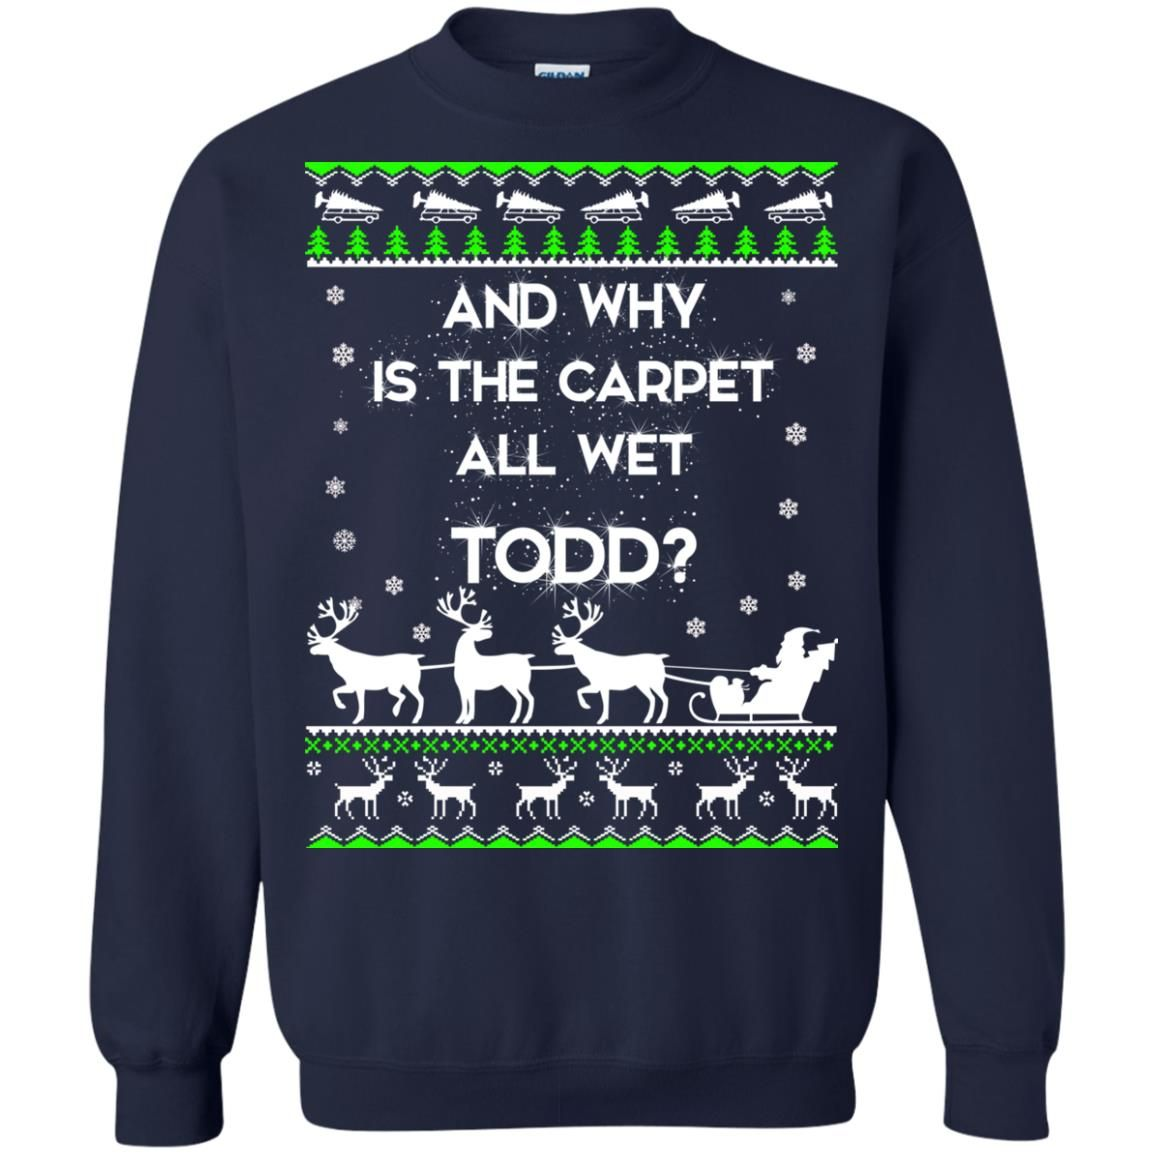 image 1608 - Christmas Vacation: And why is carpet all wet TODD ulgy sweater, hoodie